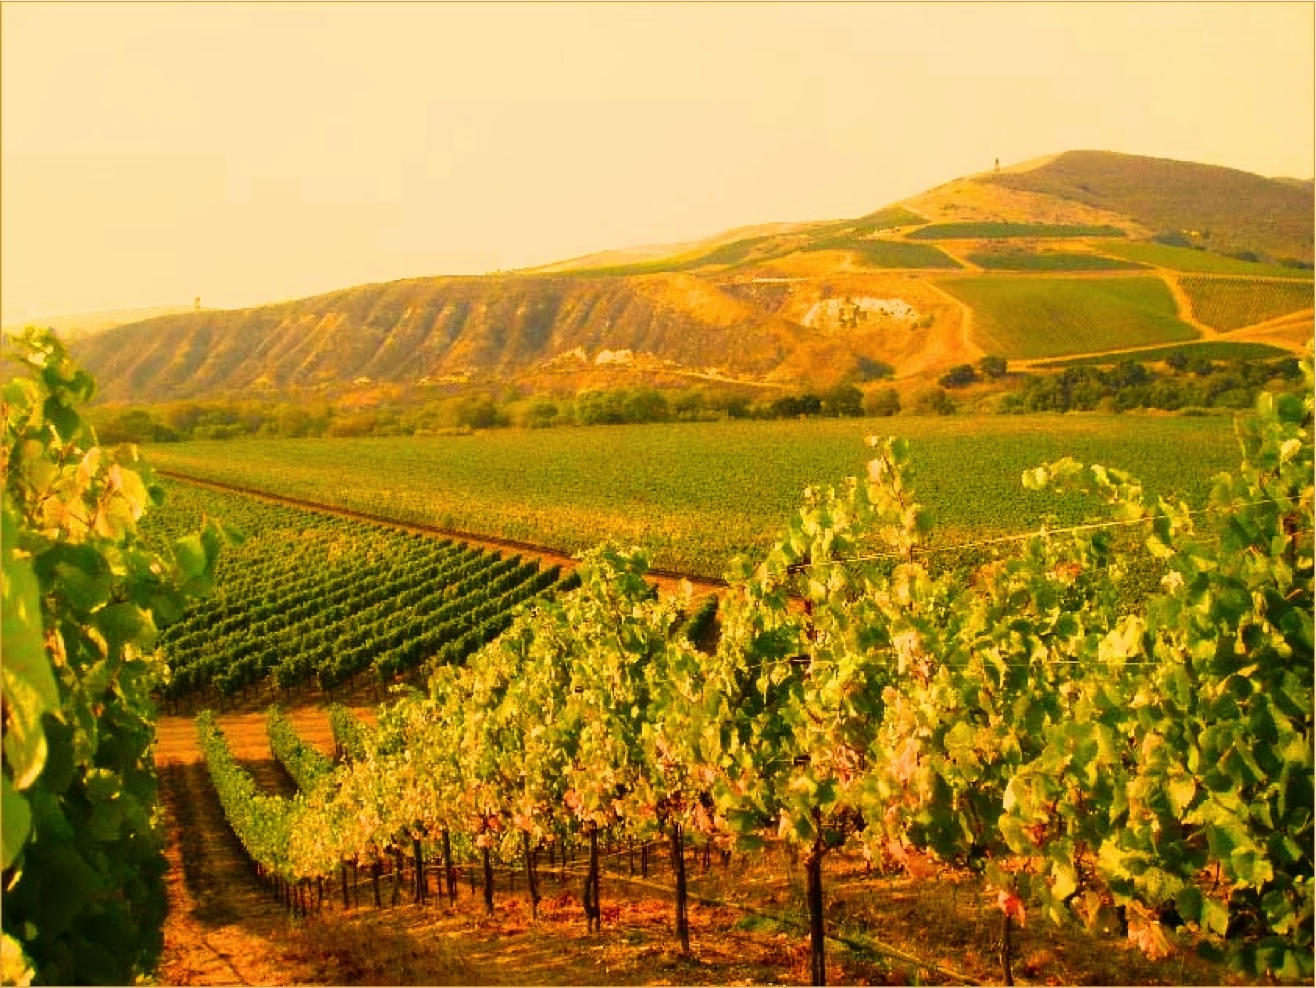 Glowing California Wine Country